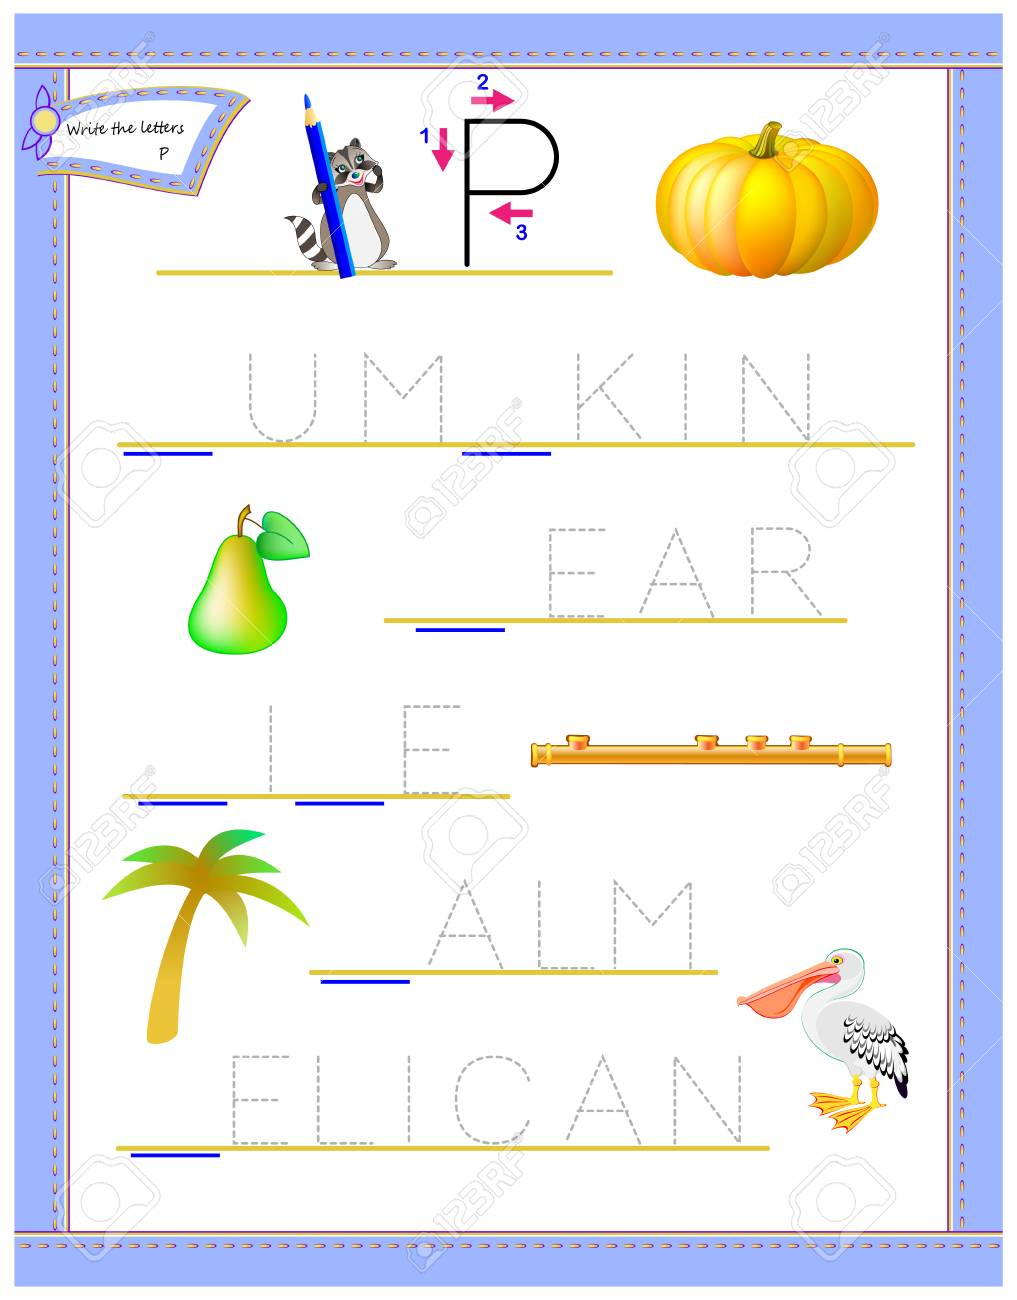 photo relating to Letter P Printable named Tracing letter P for review English alphabet. Printable worksheet..